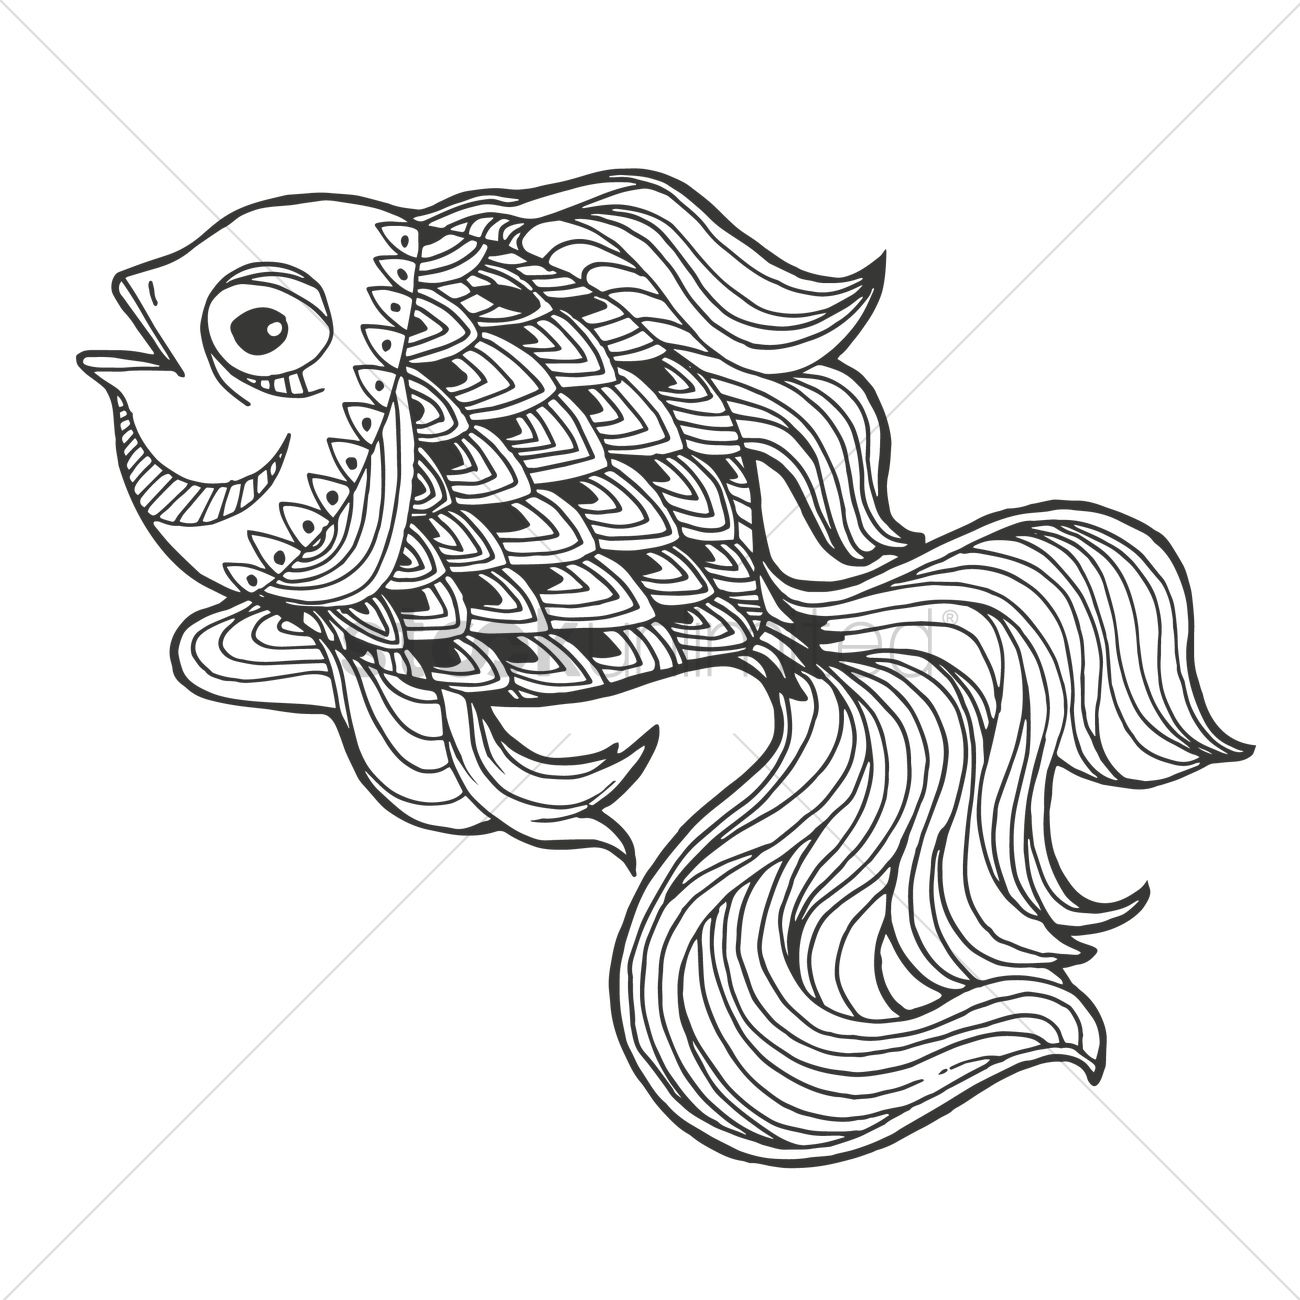 1300x1300 Intricate Fish Design Vector Image